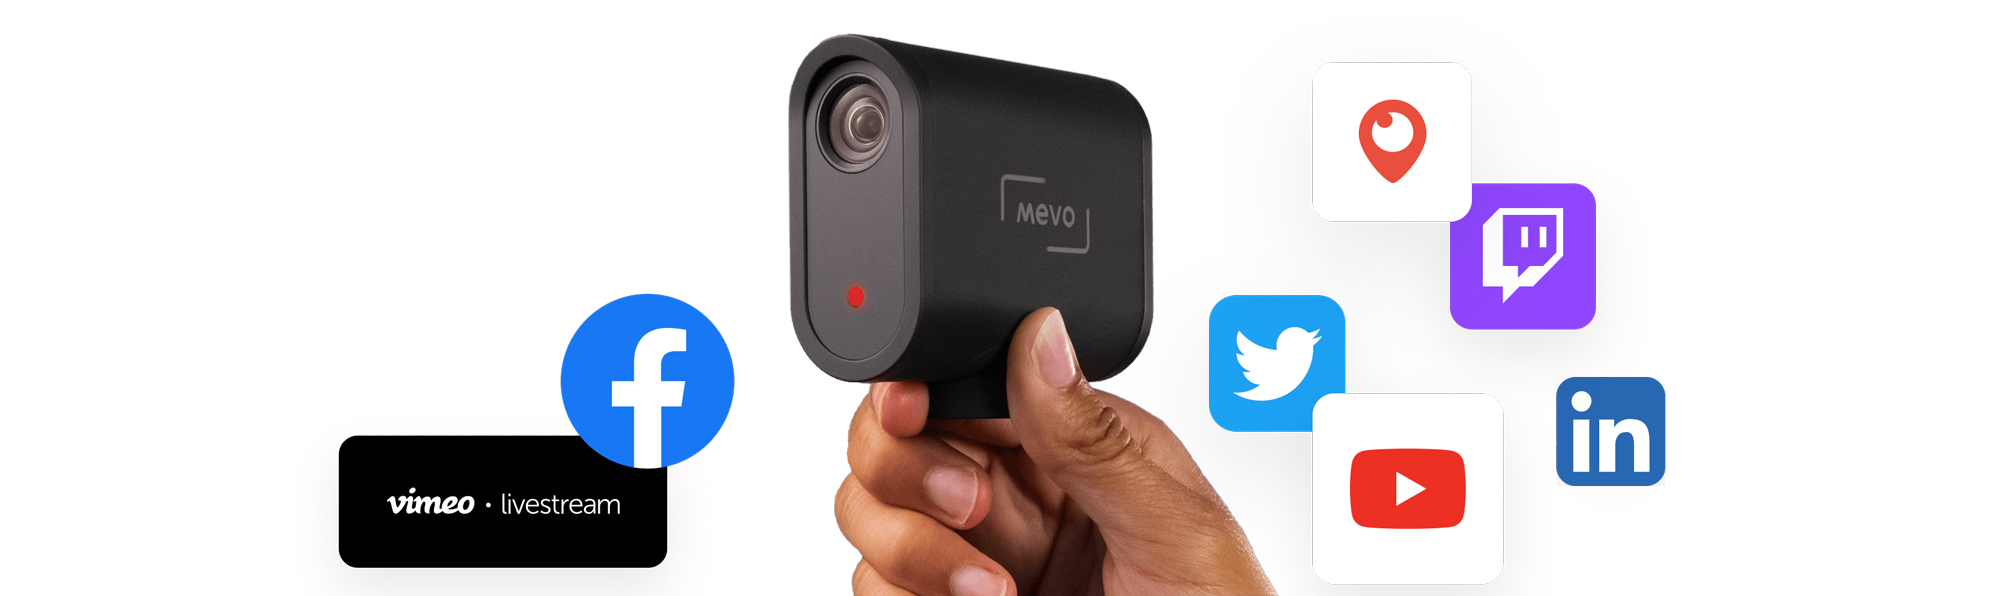 Mevo Start with live streaming logos